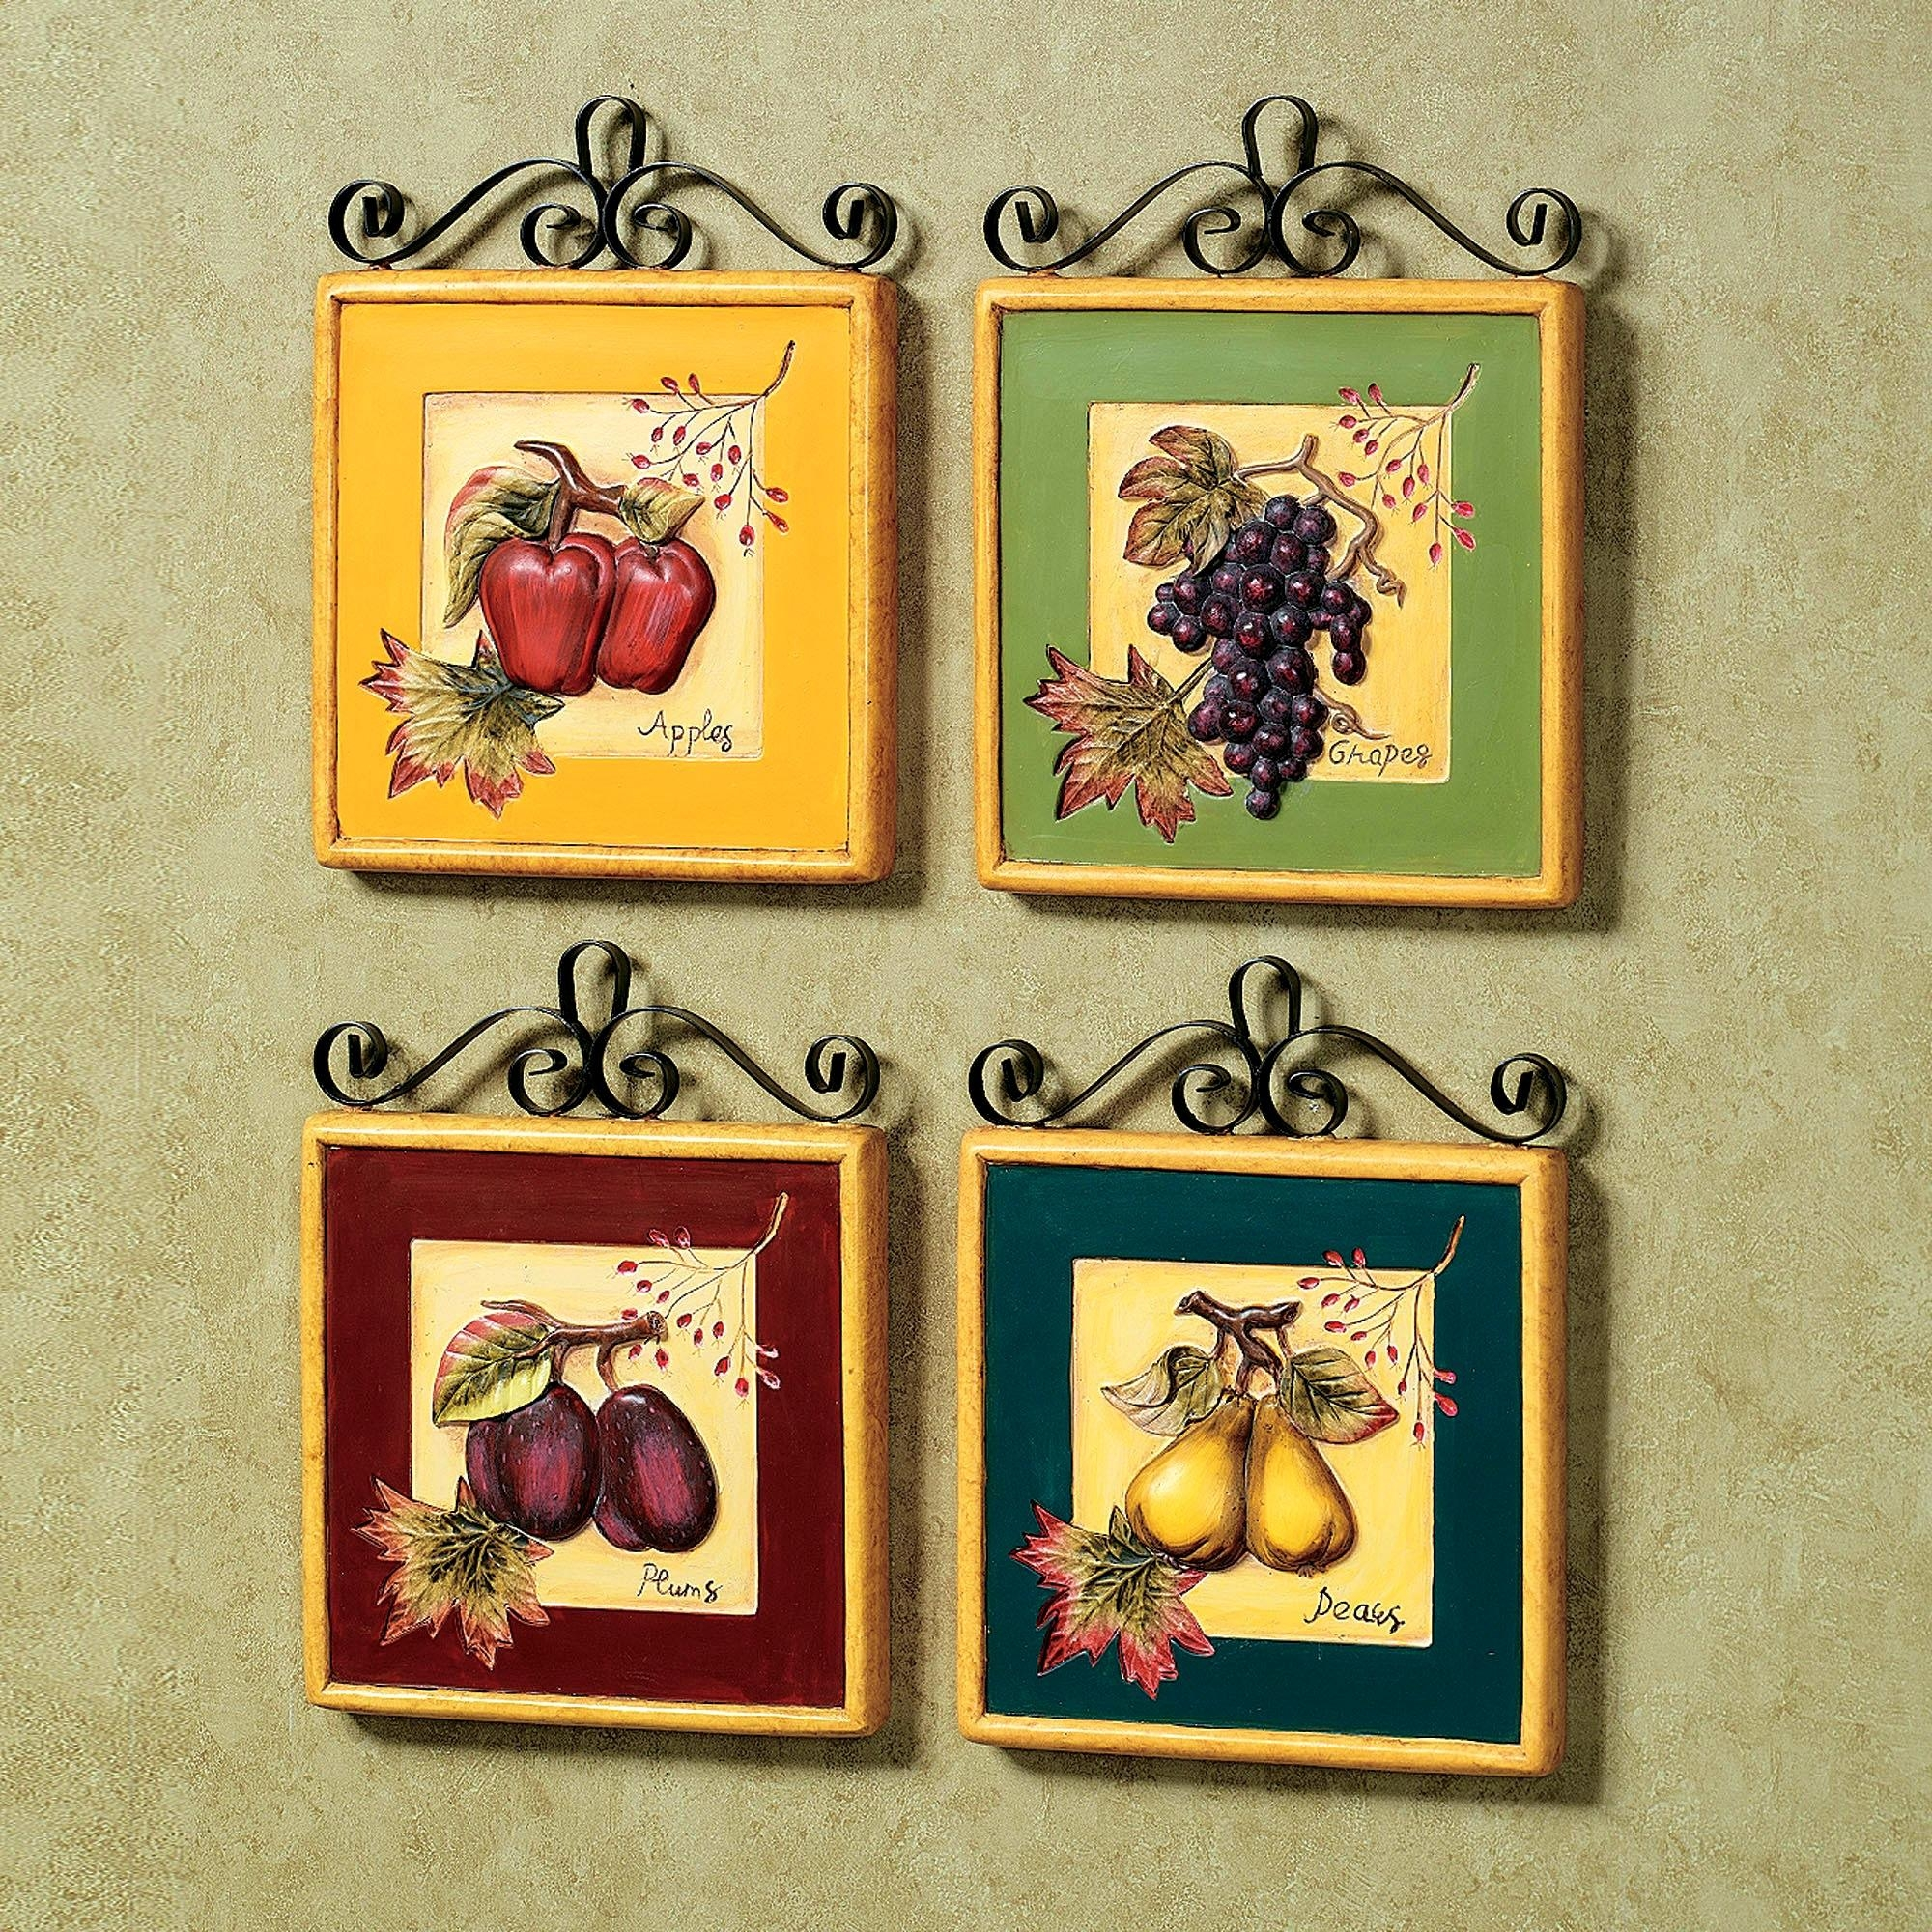 Furniture : Fascinating Fat Italian Chef Kitchen Wall Decor Within Italian Chef Wall Art (View 4 of 20)